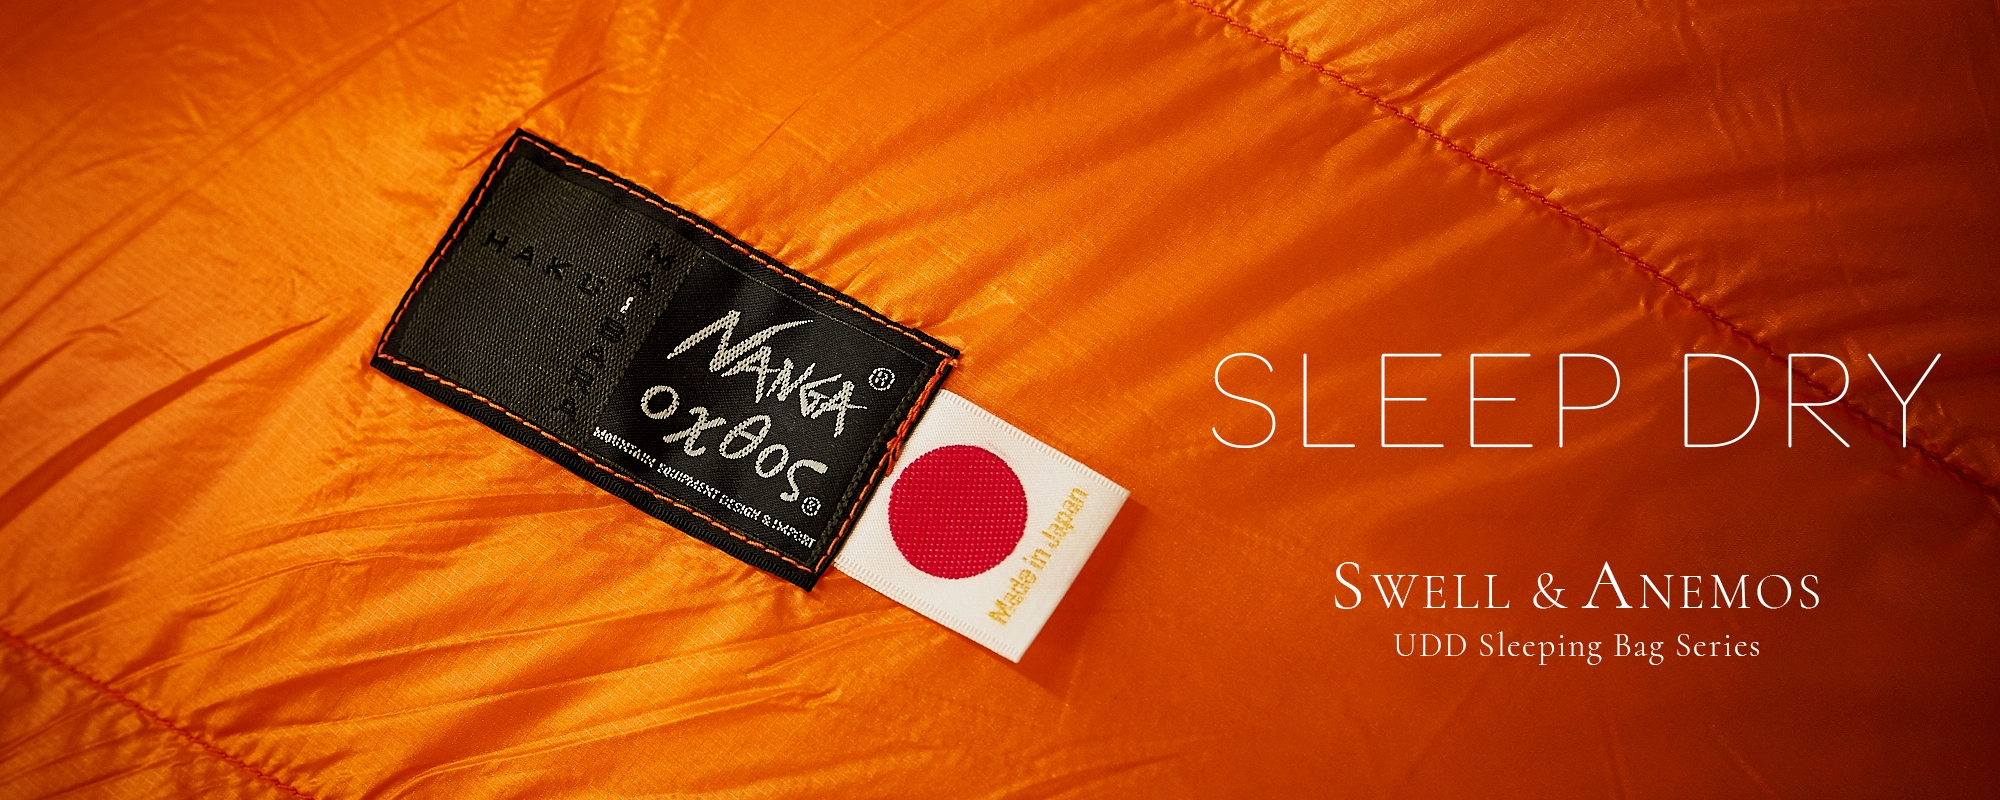 Swell & Anemos UDD Sleeping Bag Series